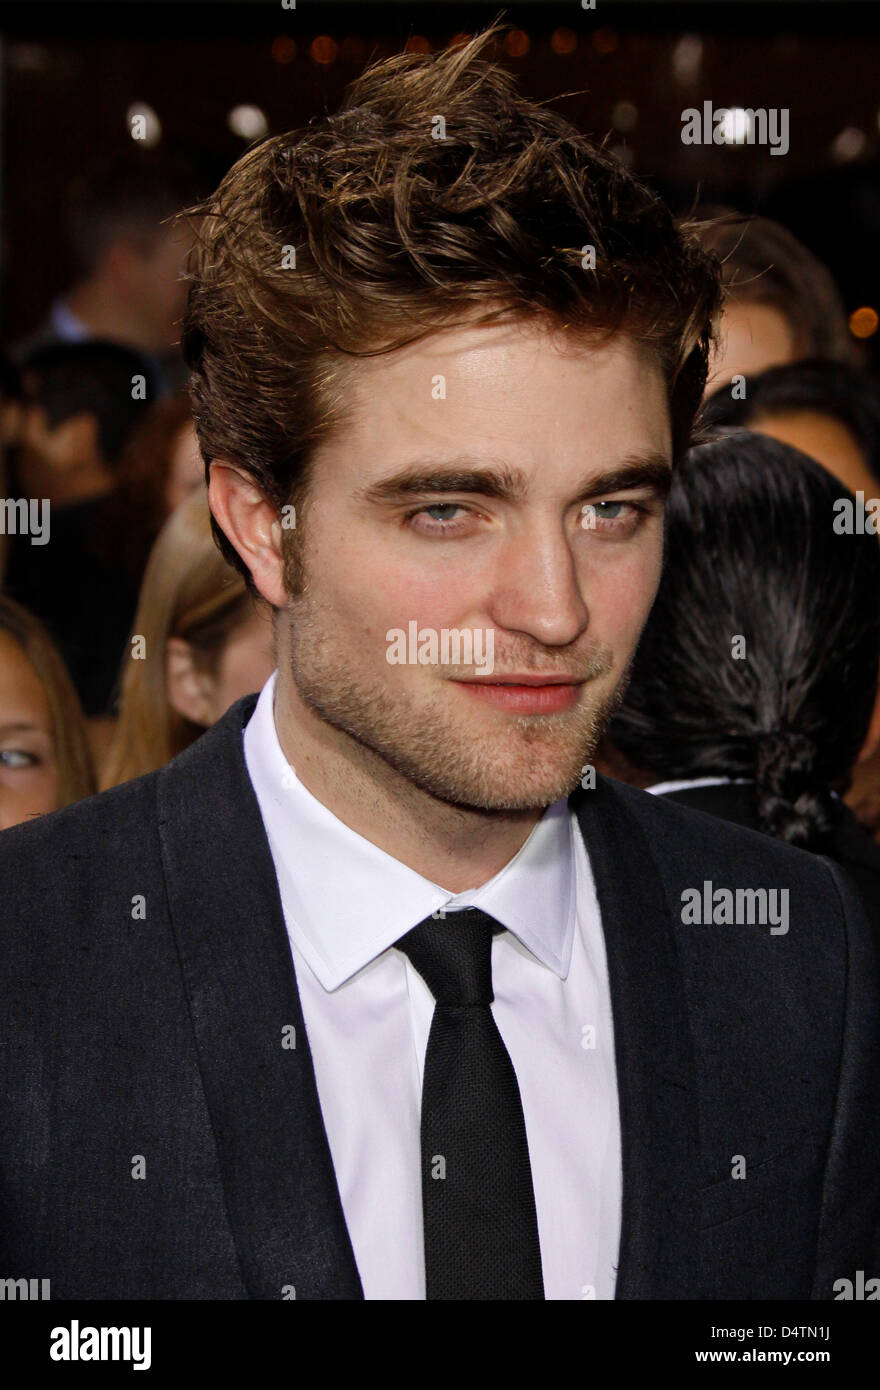 Actor Robert Pattinson arrives at the world premiere of the film 'Twilight: New Moon' at Bruin and Village - Stock Image